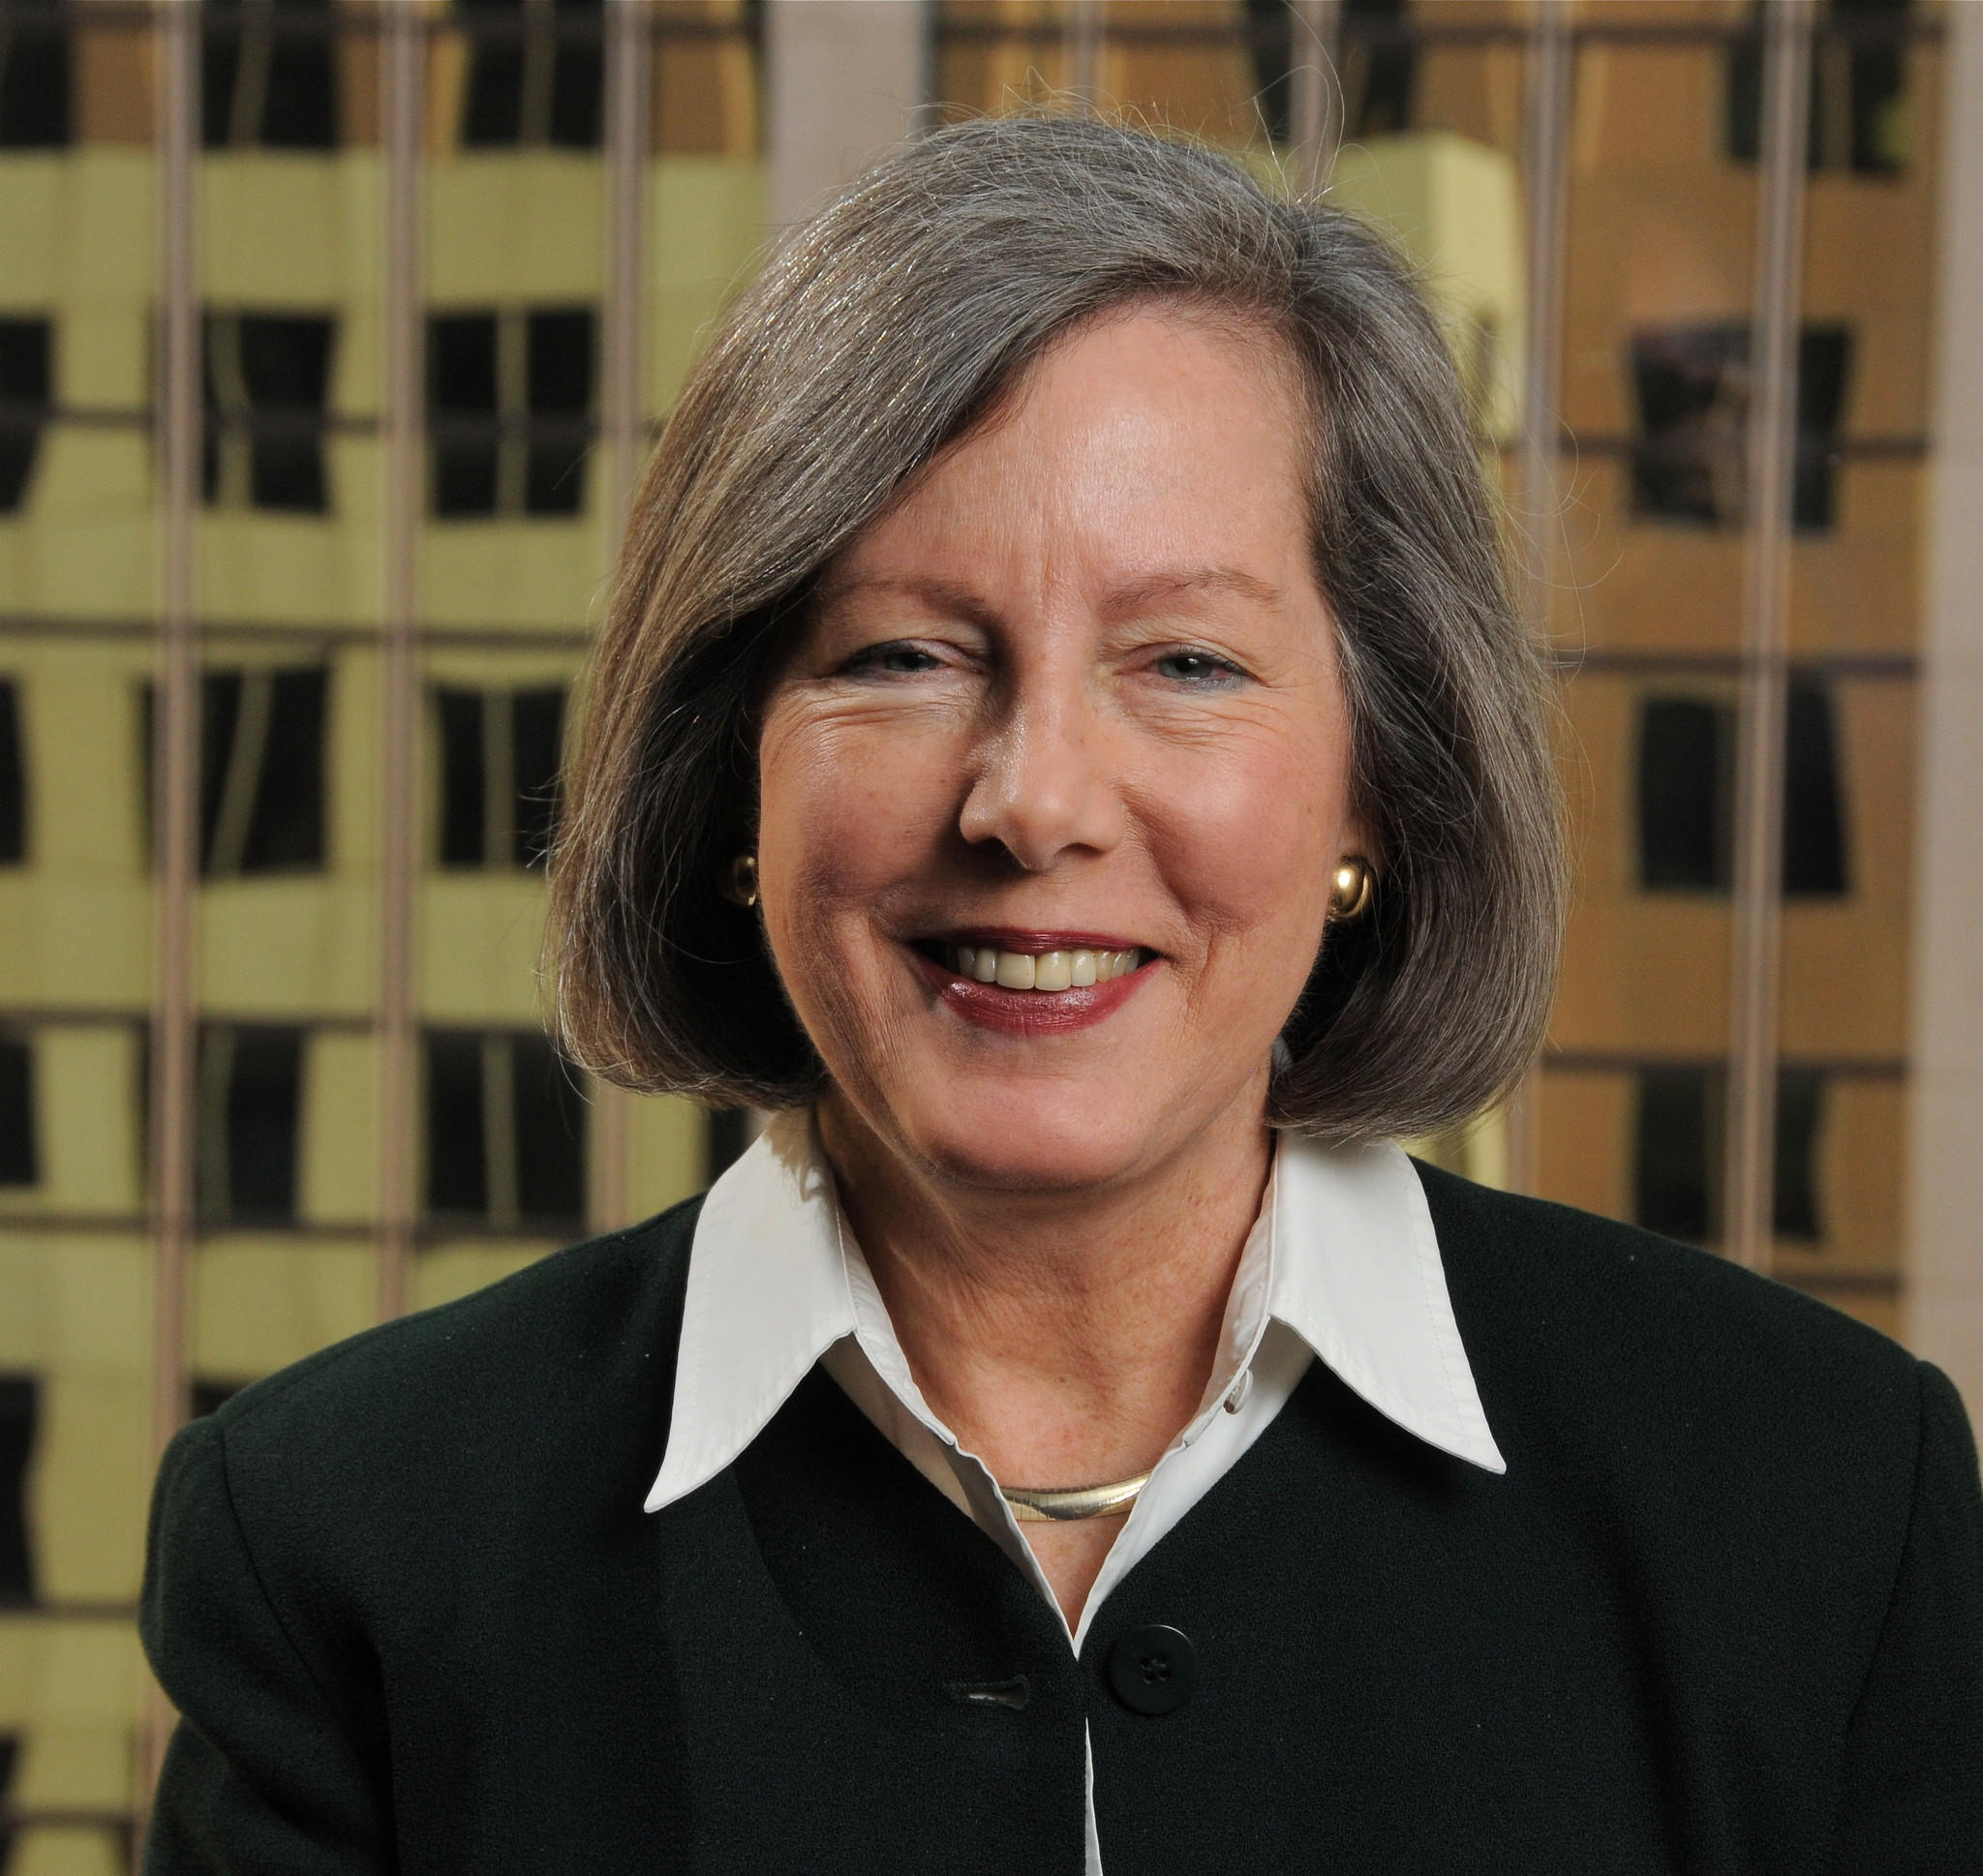 Attorney Diane W. Whitney to receive the Connecticut Bar Association's Charles J. Parker Legal Services Award.